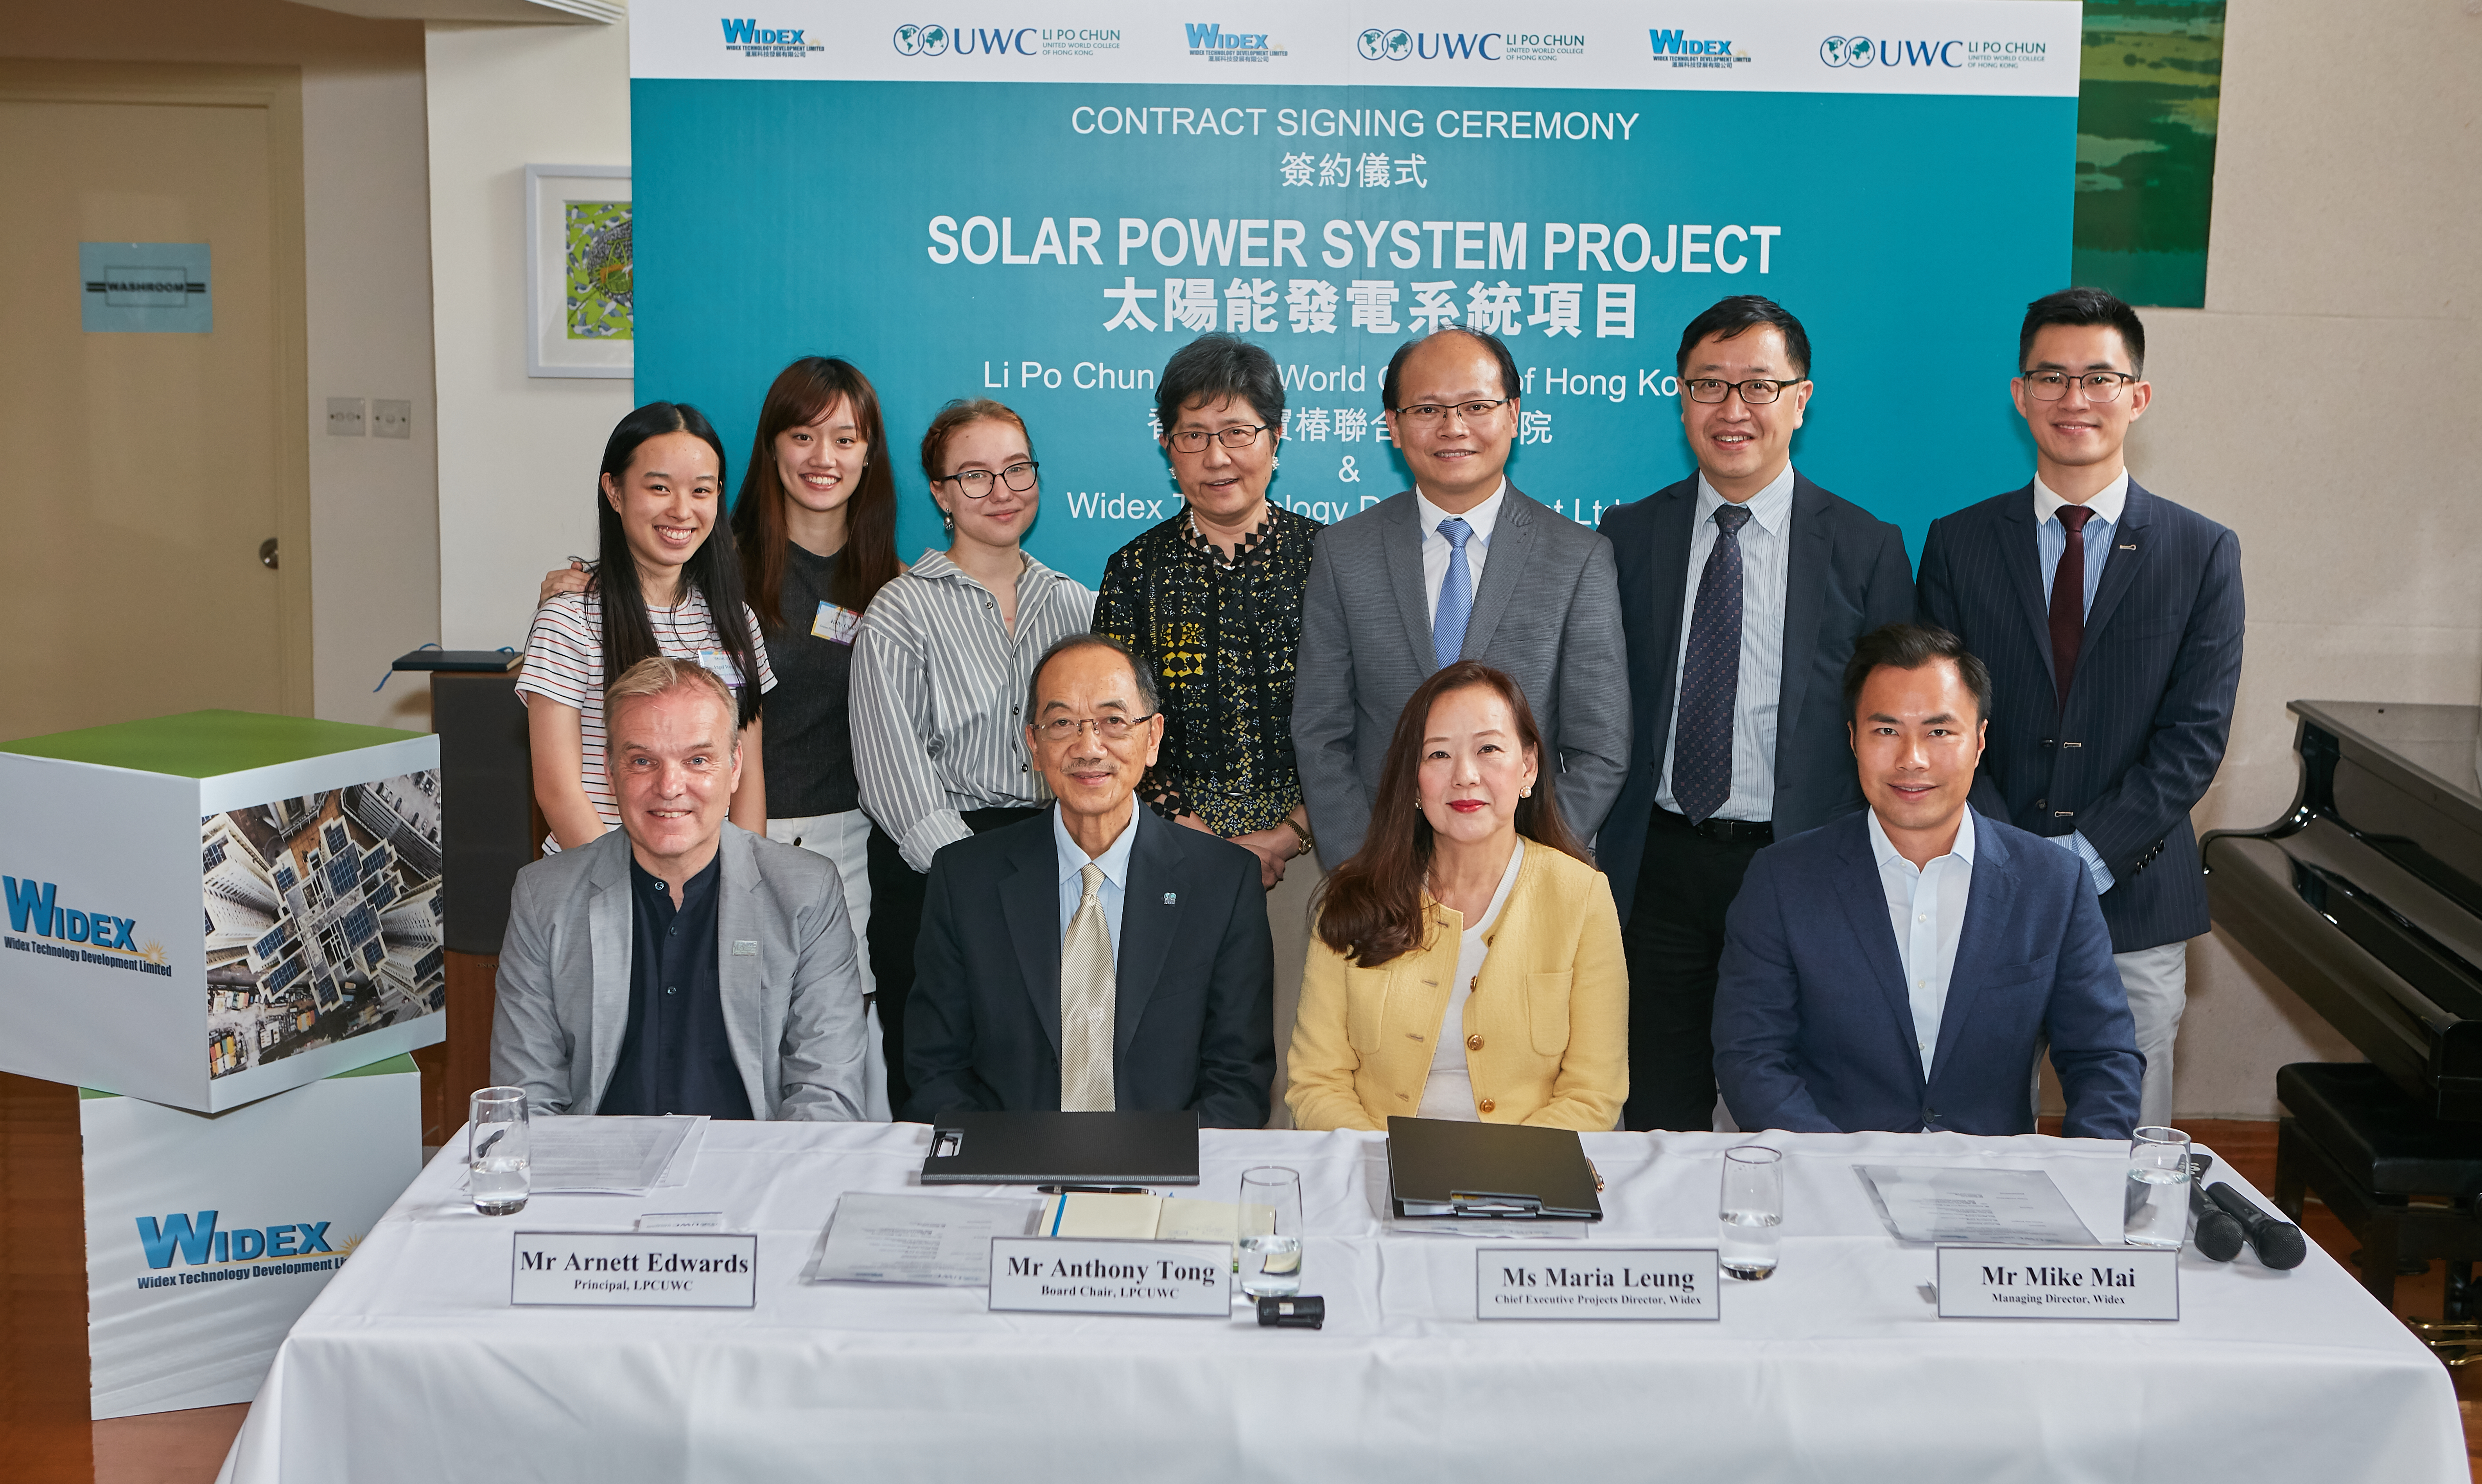 Solar Power System Project Signing and PressCon